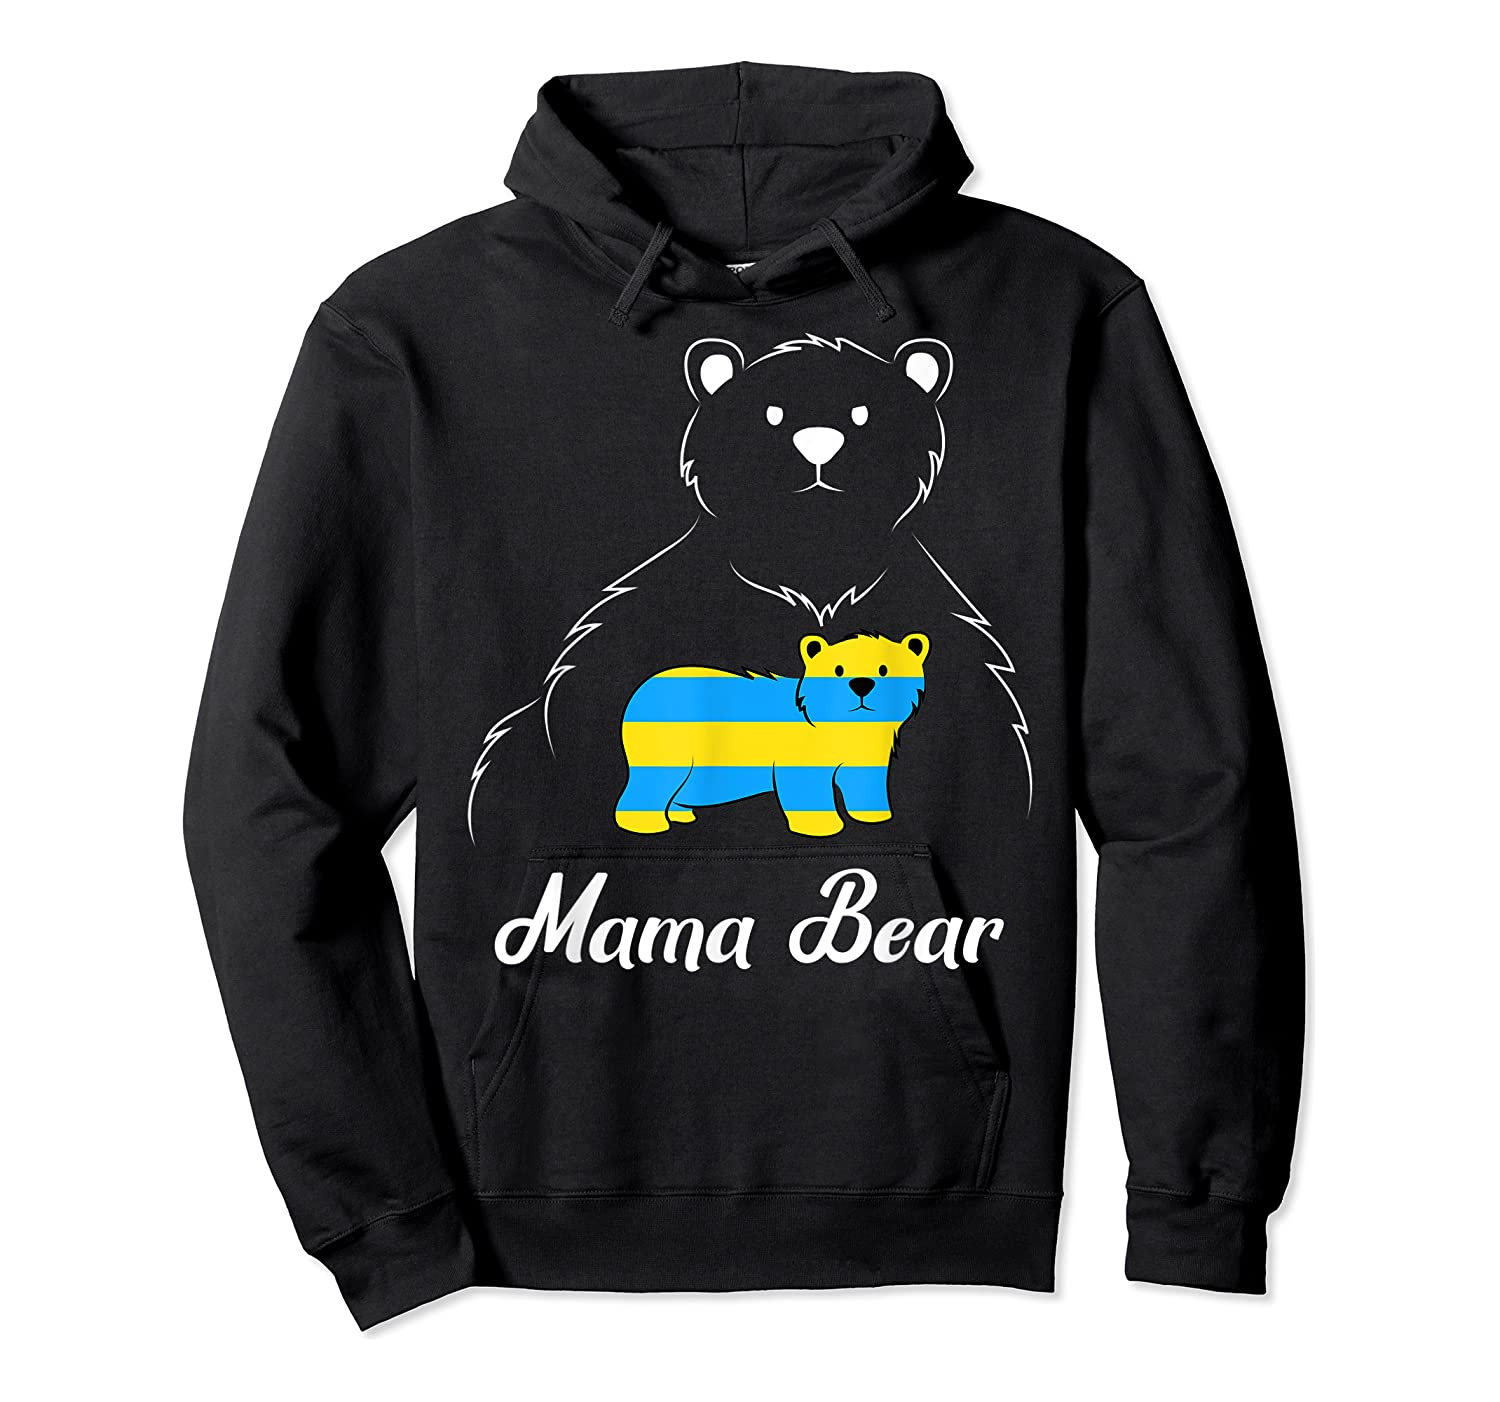 Down Syndrome Mom Awareness Trisomy 21 Gold Blue Ribbon Gift T-shirt Unisex Pullover Hoodie